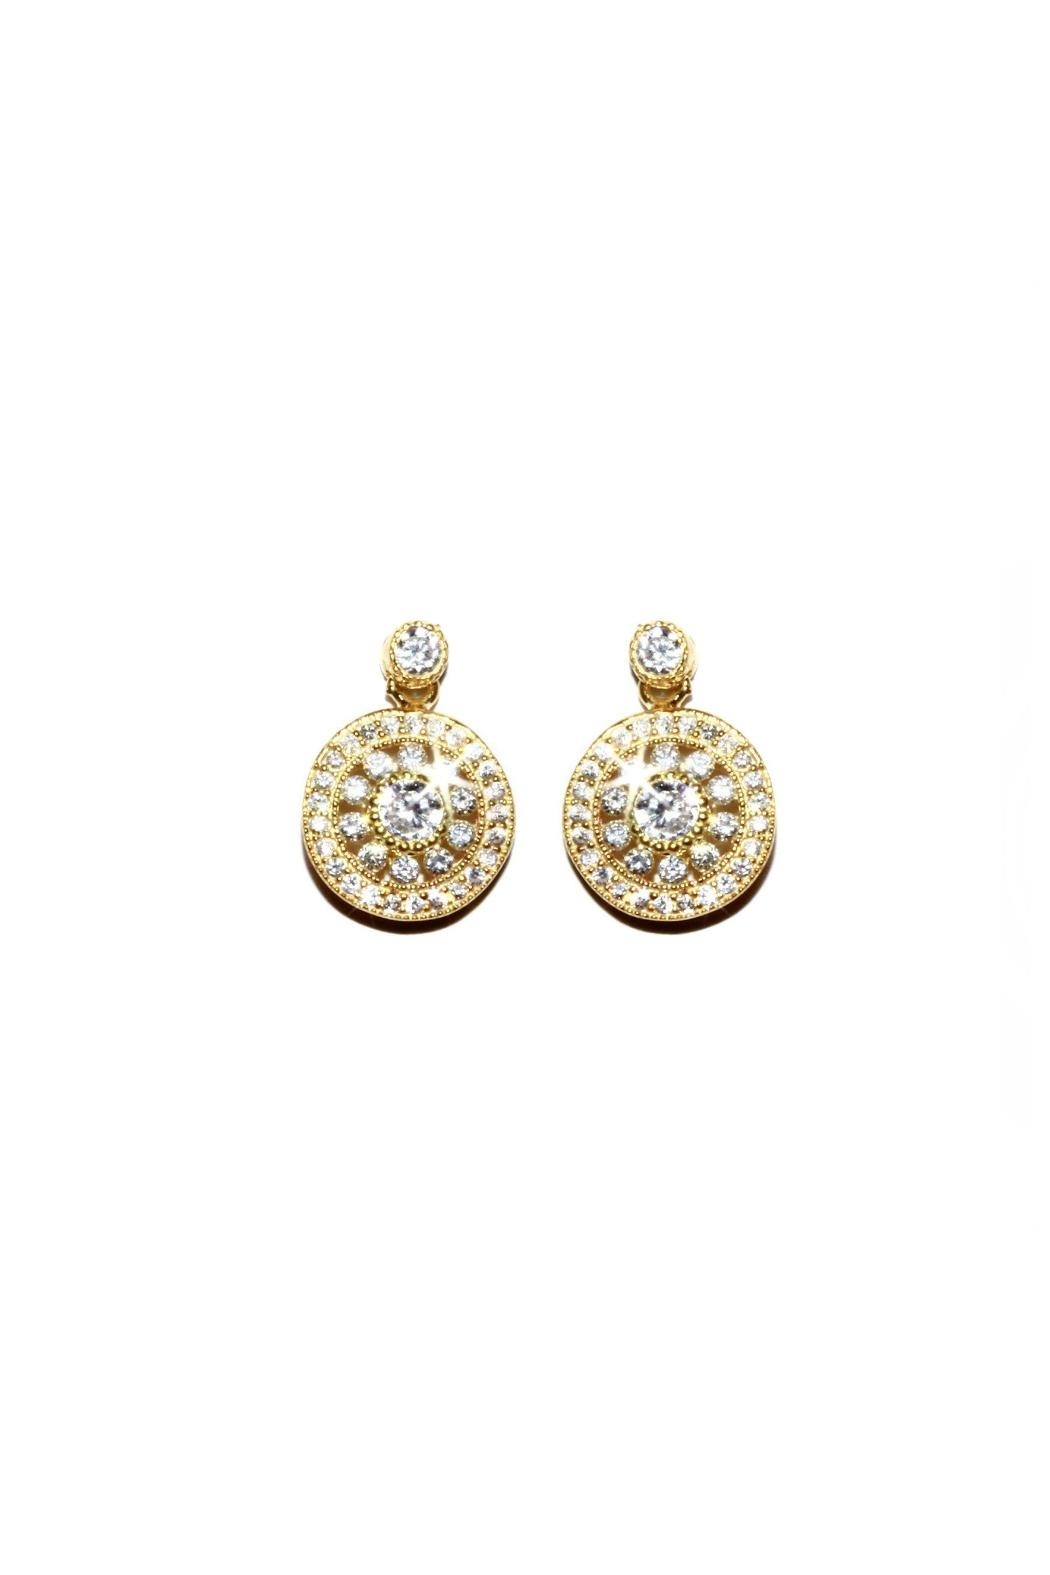 Gemma Collection Elegant Pave Earrings - Main Image